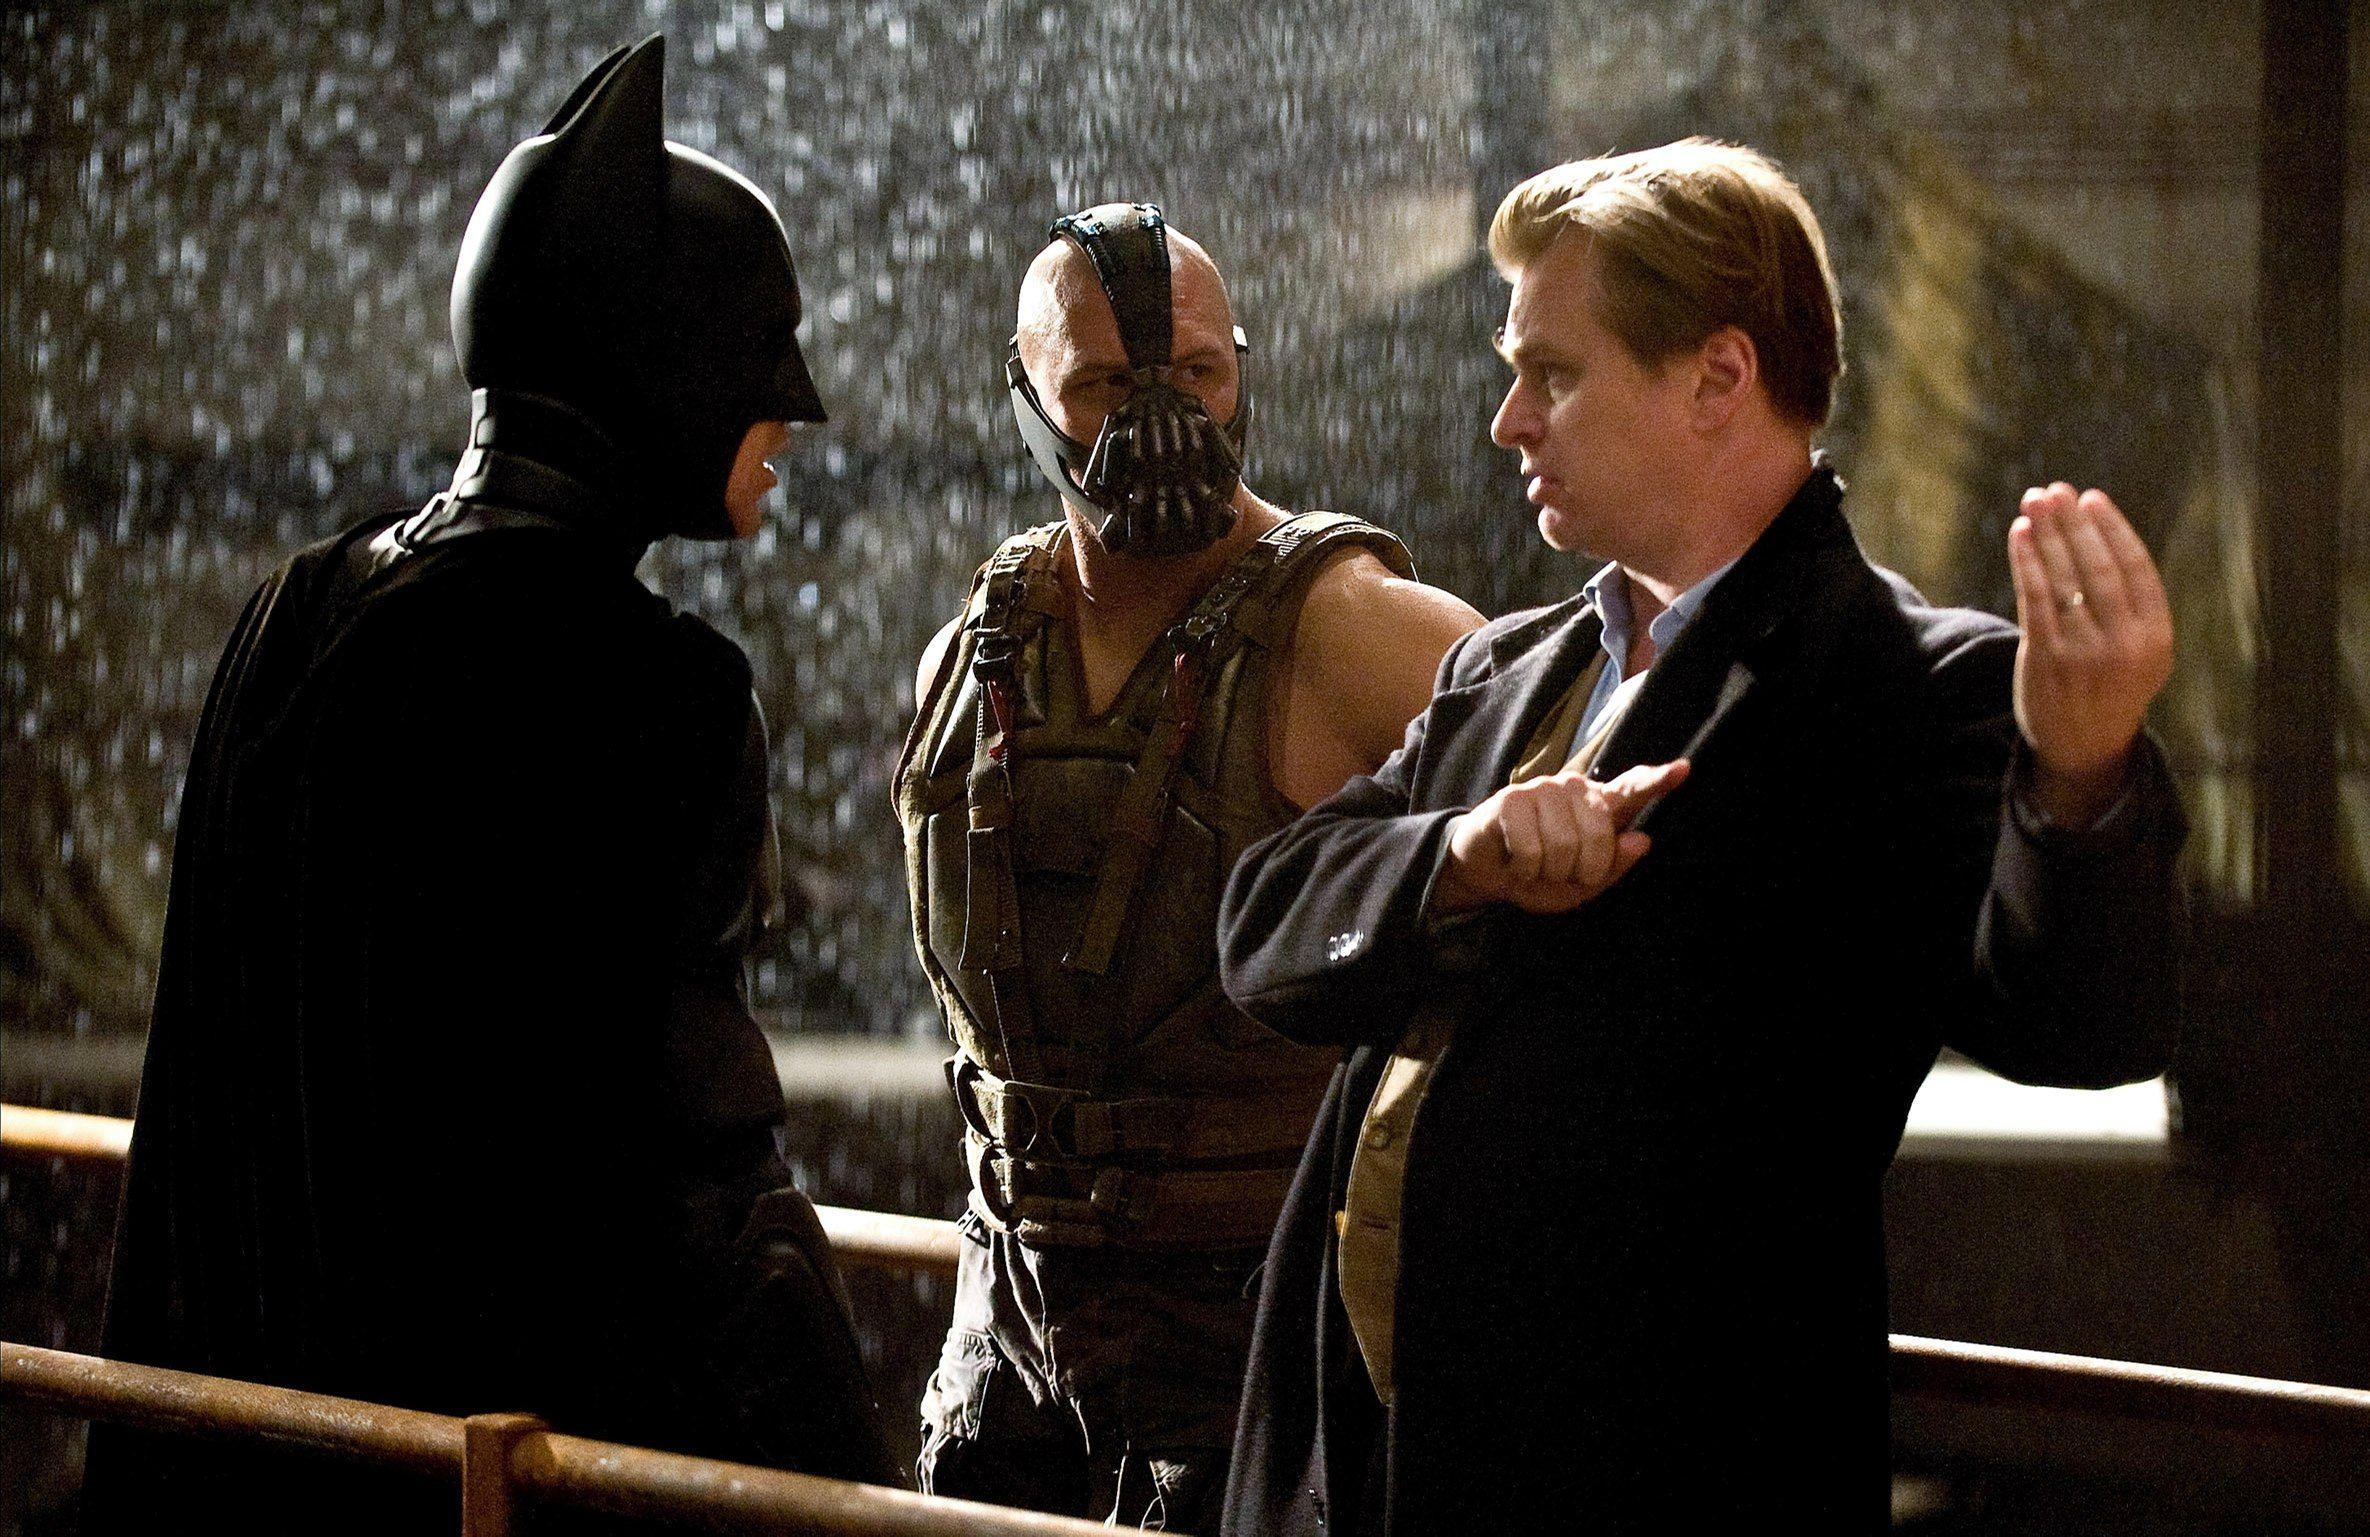 Christopher Nolan is working on 4K remasters of The Dark Knight Trilogy